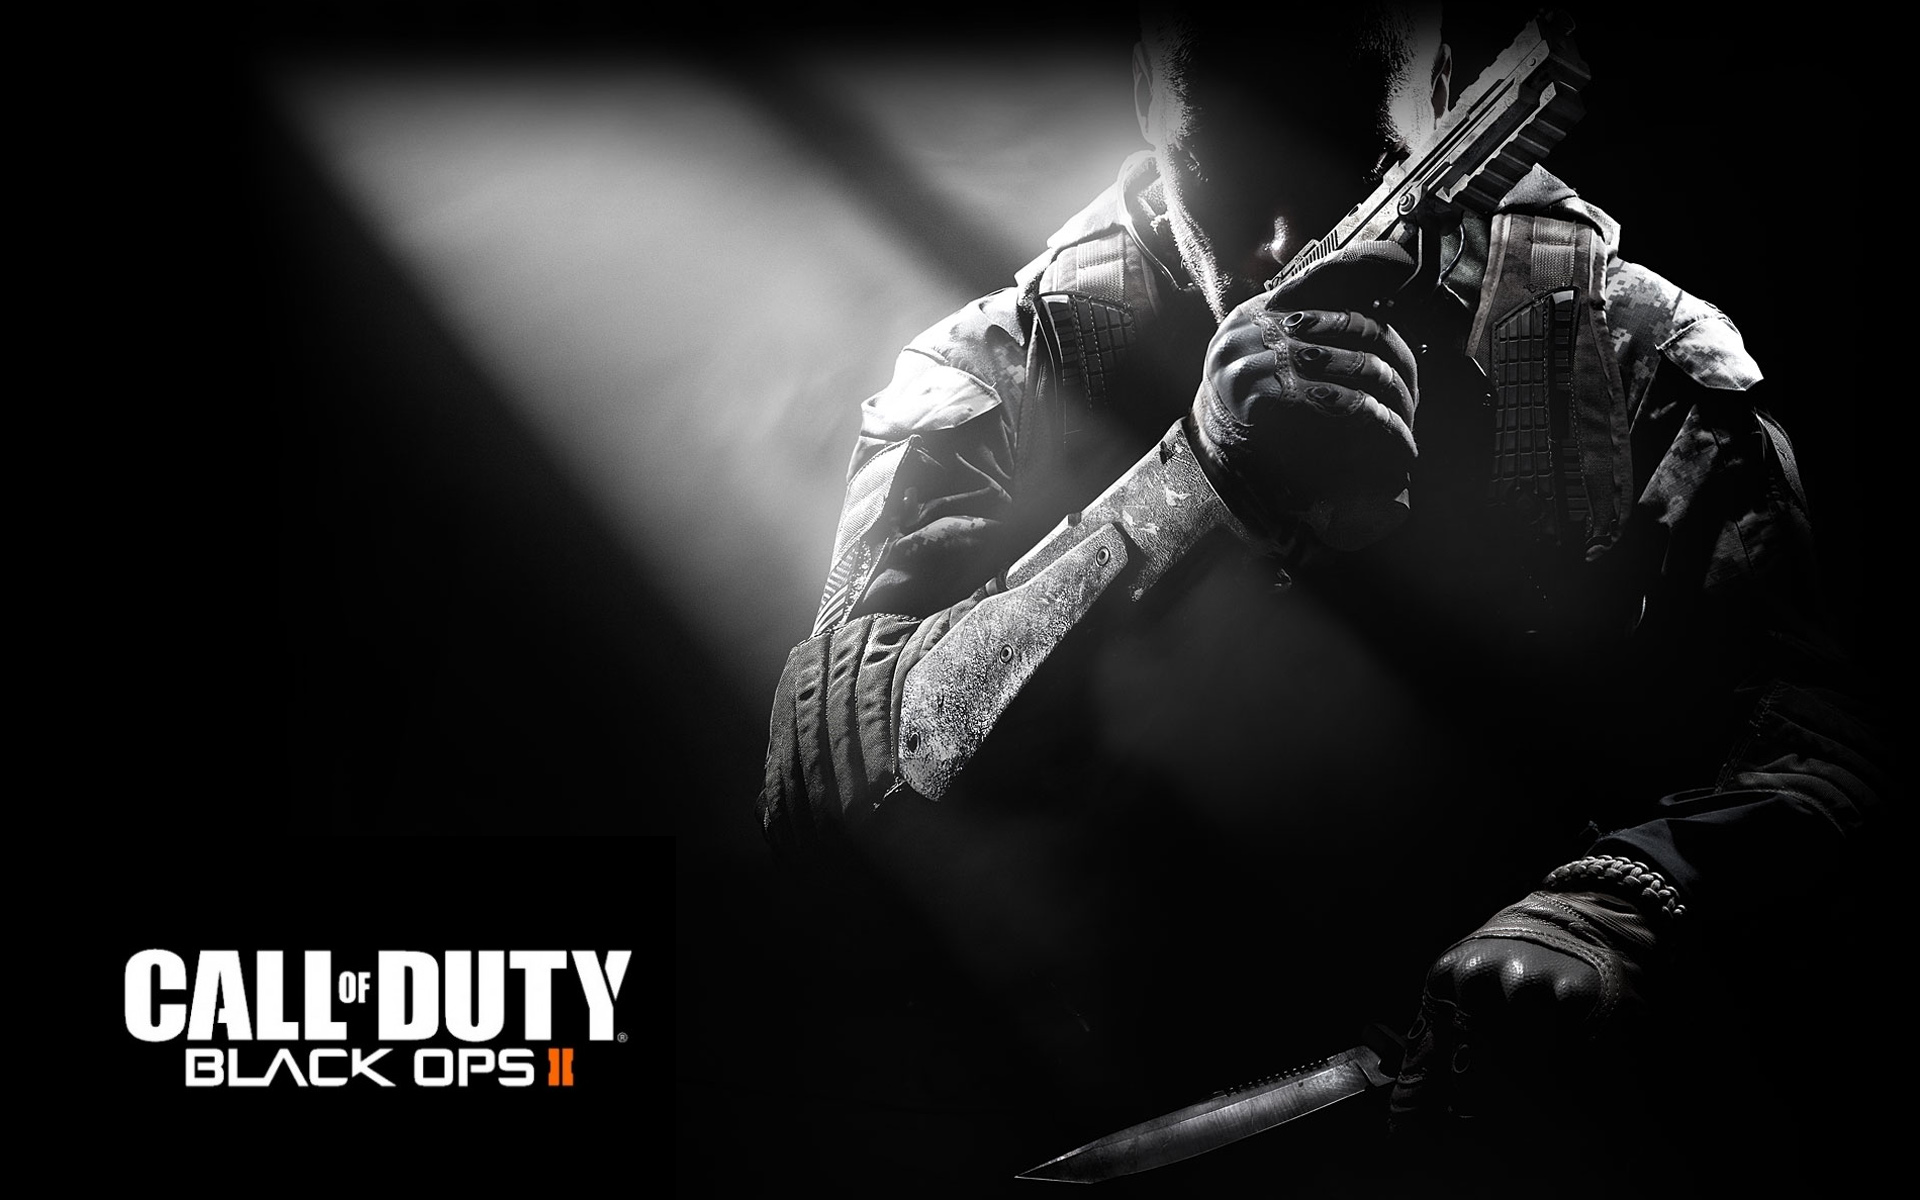 Call of Duty Black Ops 2 Wallpapers HD Wallpapers 1920x1200